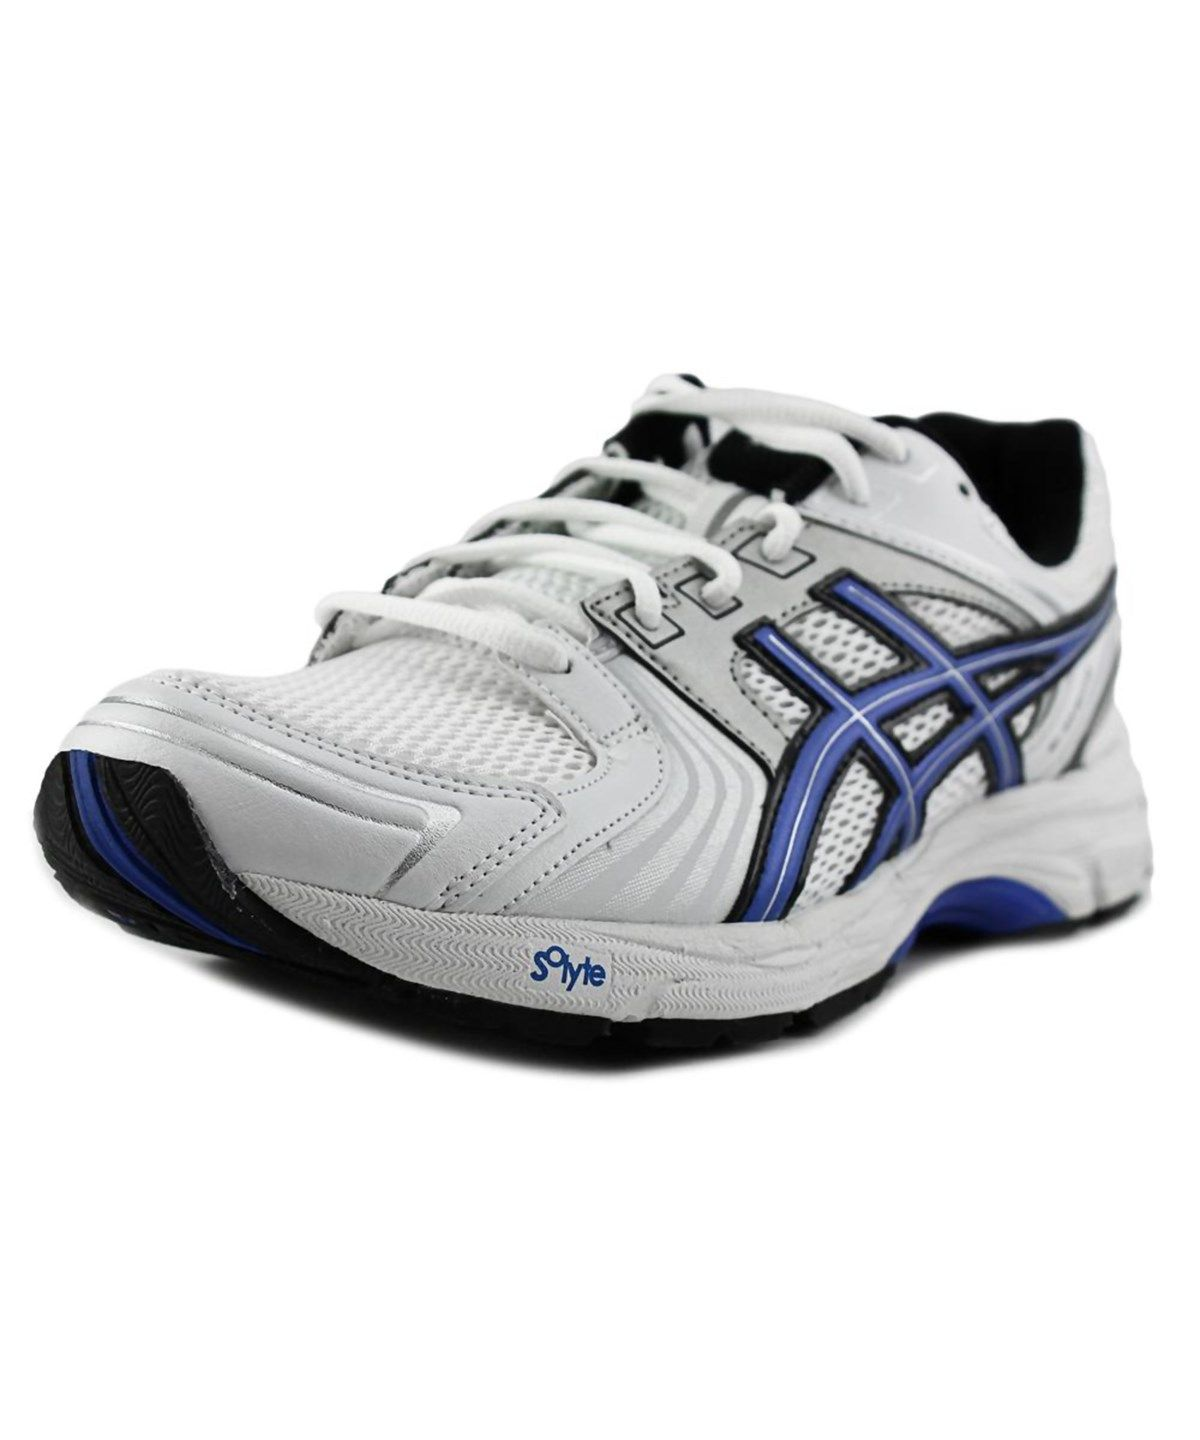 ASICS ASICS GEL TECH WALKER RONDES NEO TECH 4 -SNEAKERS SYNTHÉTIQUES GEL RONDES 6990077 - madridturismobitcoin.website